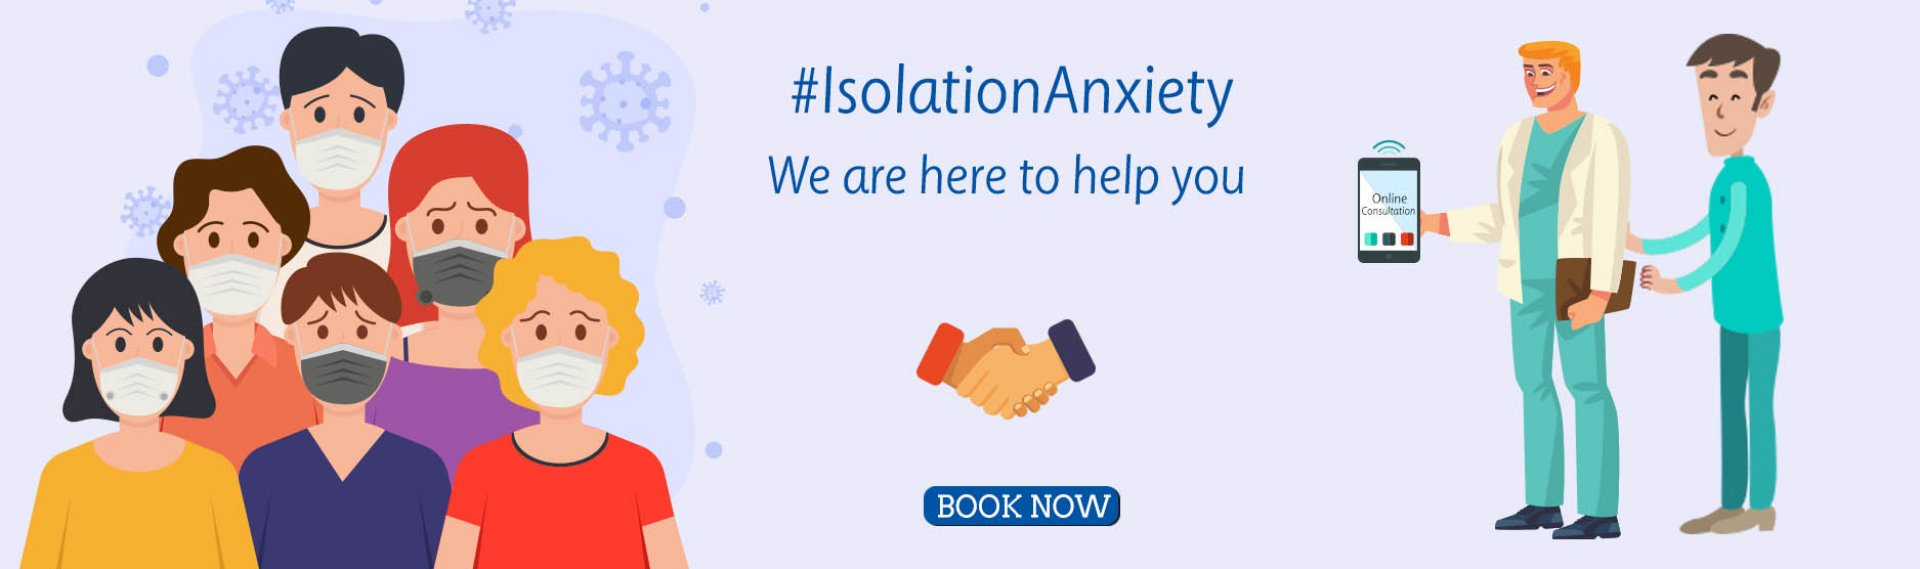 isolation-anxiety